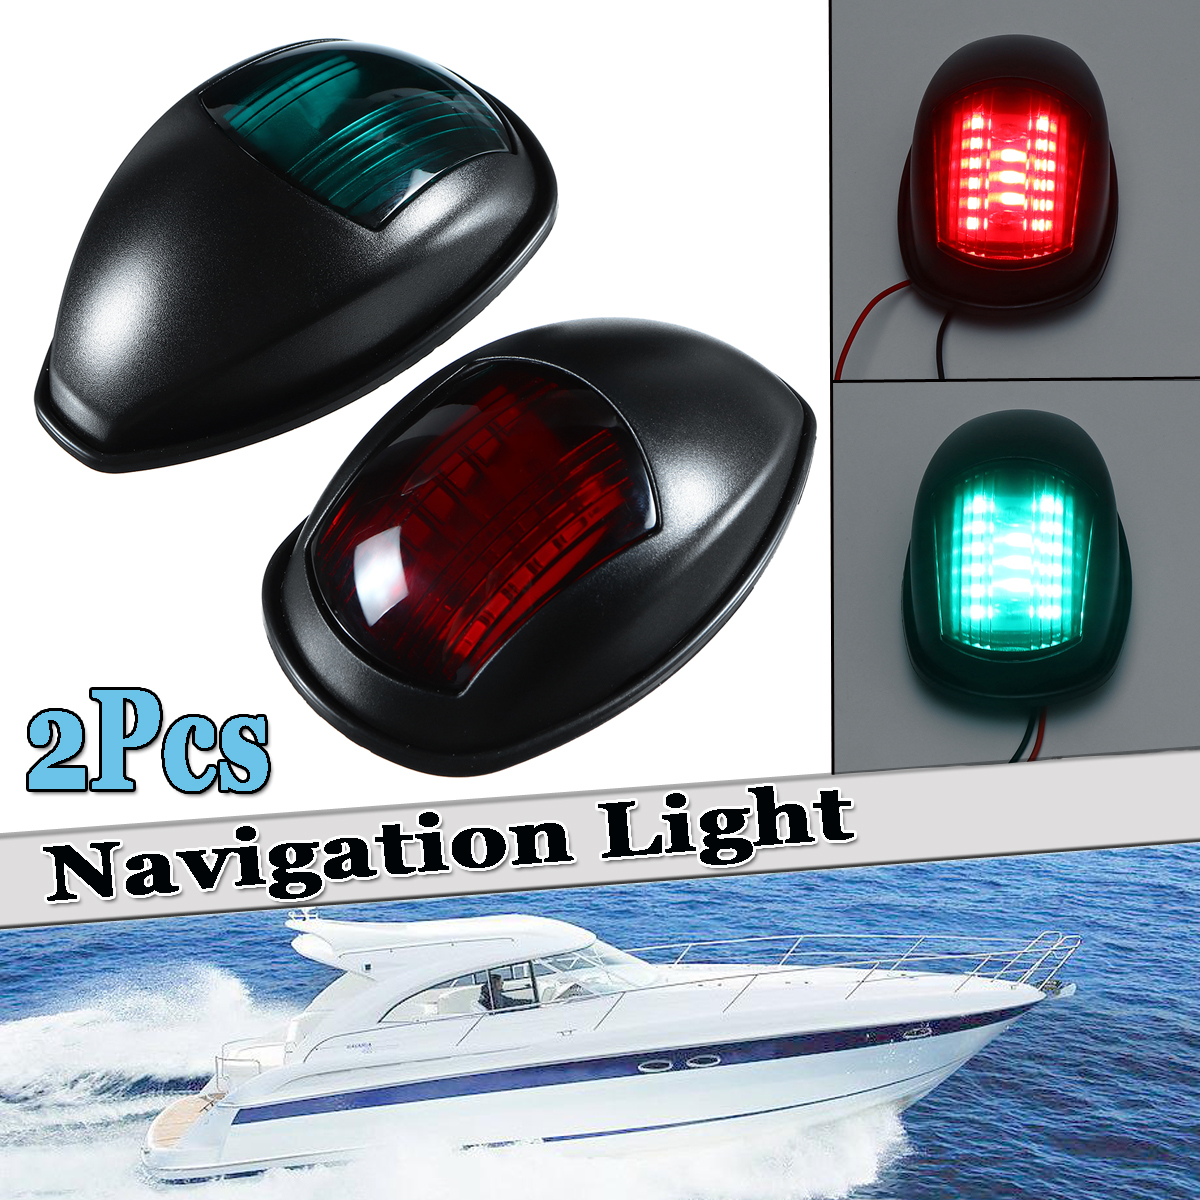 Atv,rv,boat & Other Vehicle Marine Hardware Beler Car Abs Led Light Electronic Navigation Compass Fit For Marine Boat Sail Ship Vehicle Car Confirming Navigation Directions Pure White And Translucent